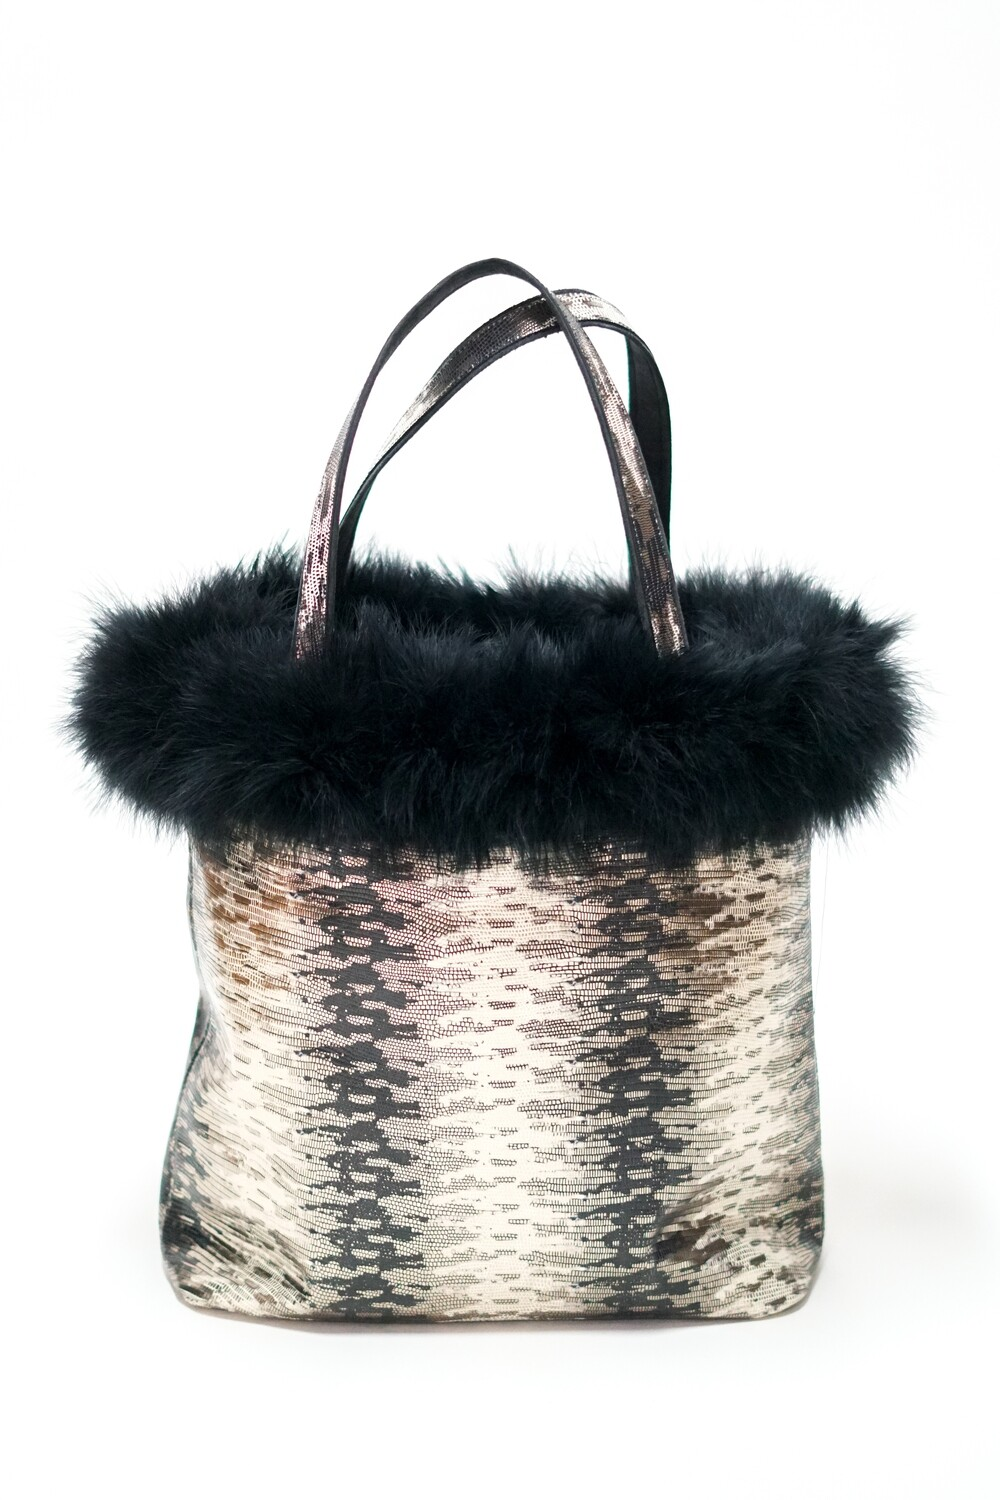 Marabout Feathers Printed Snakeskin on Cowhide Tote